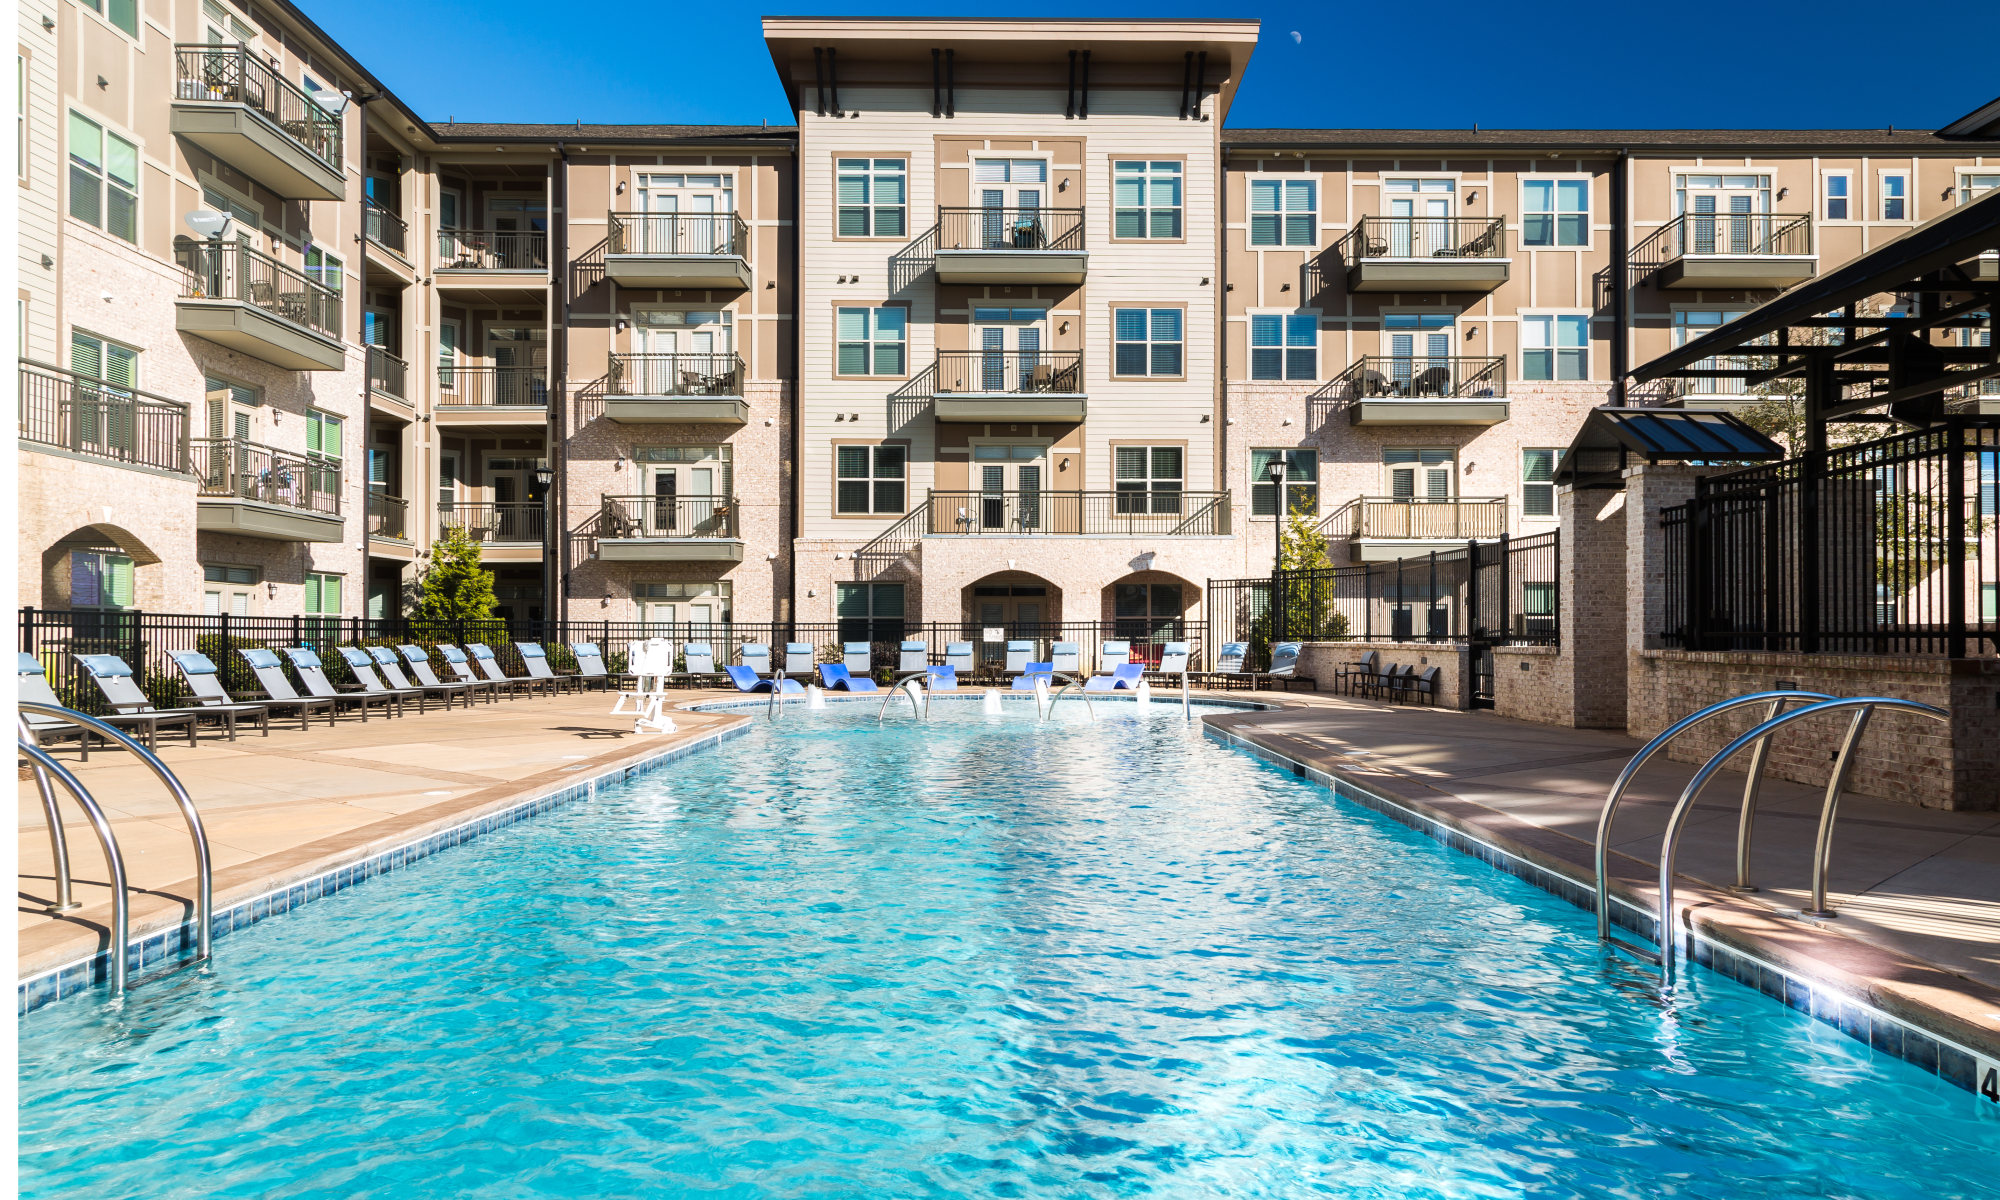 Luxury Apartments Pool. Apartments at Bradford Luxury  Townhomes for Rent in Cary NC